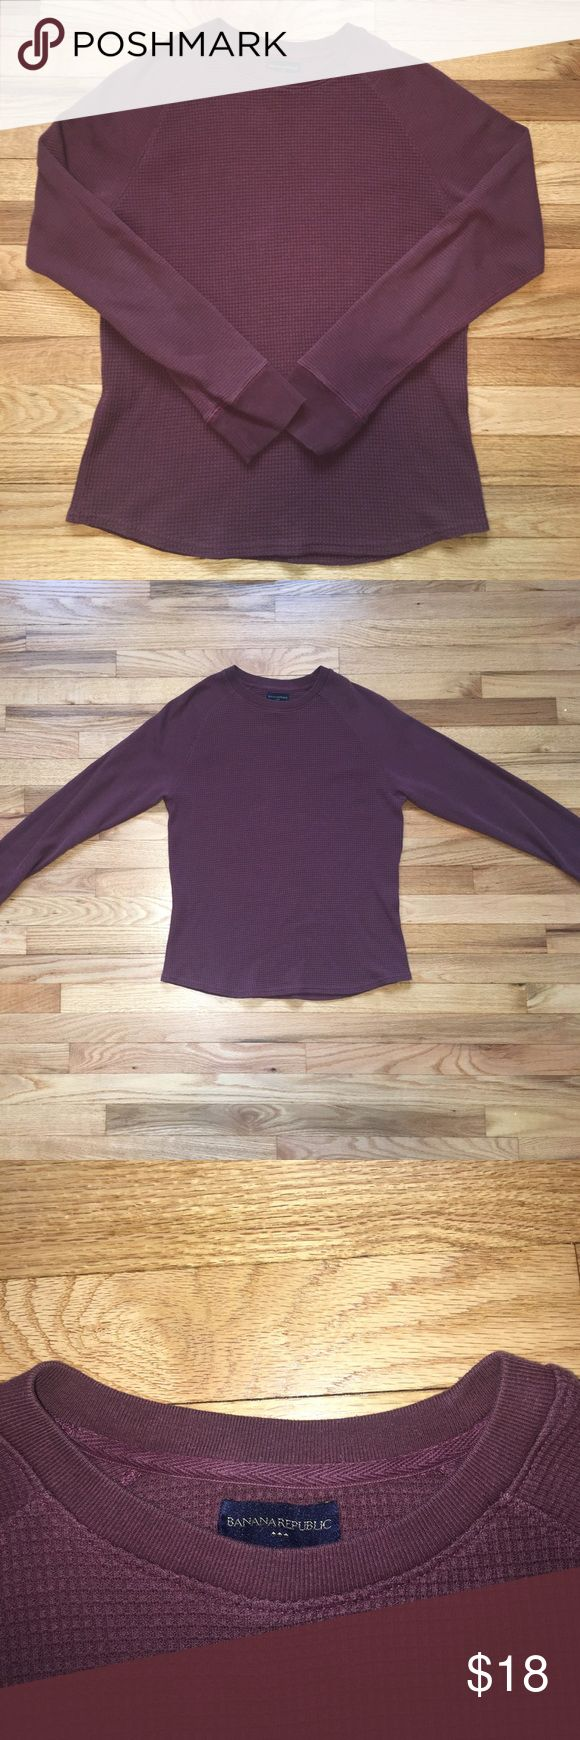 Men's Burgundy Banana Republic Waffle Shirt Excellent Quality Men's Burgundy Banana Republic Crewneck Waffle Shirt Banana Republic Shirts Tees - Long Sleeve